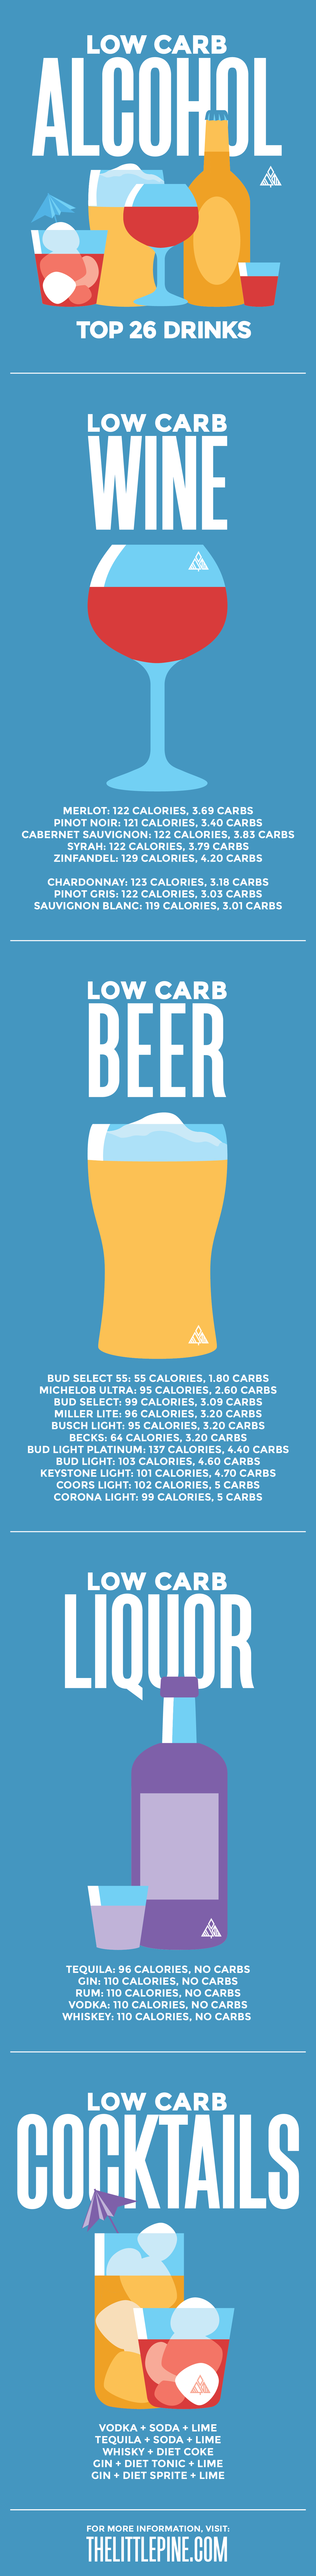 Low Carb Alcohol graphic with carbs and calories for liquor, beer, wine and cocktails